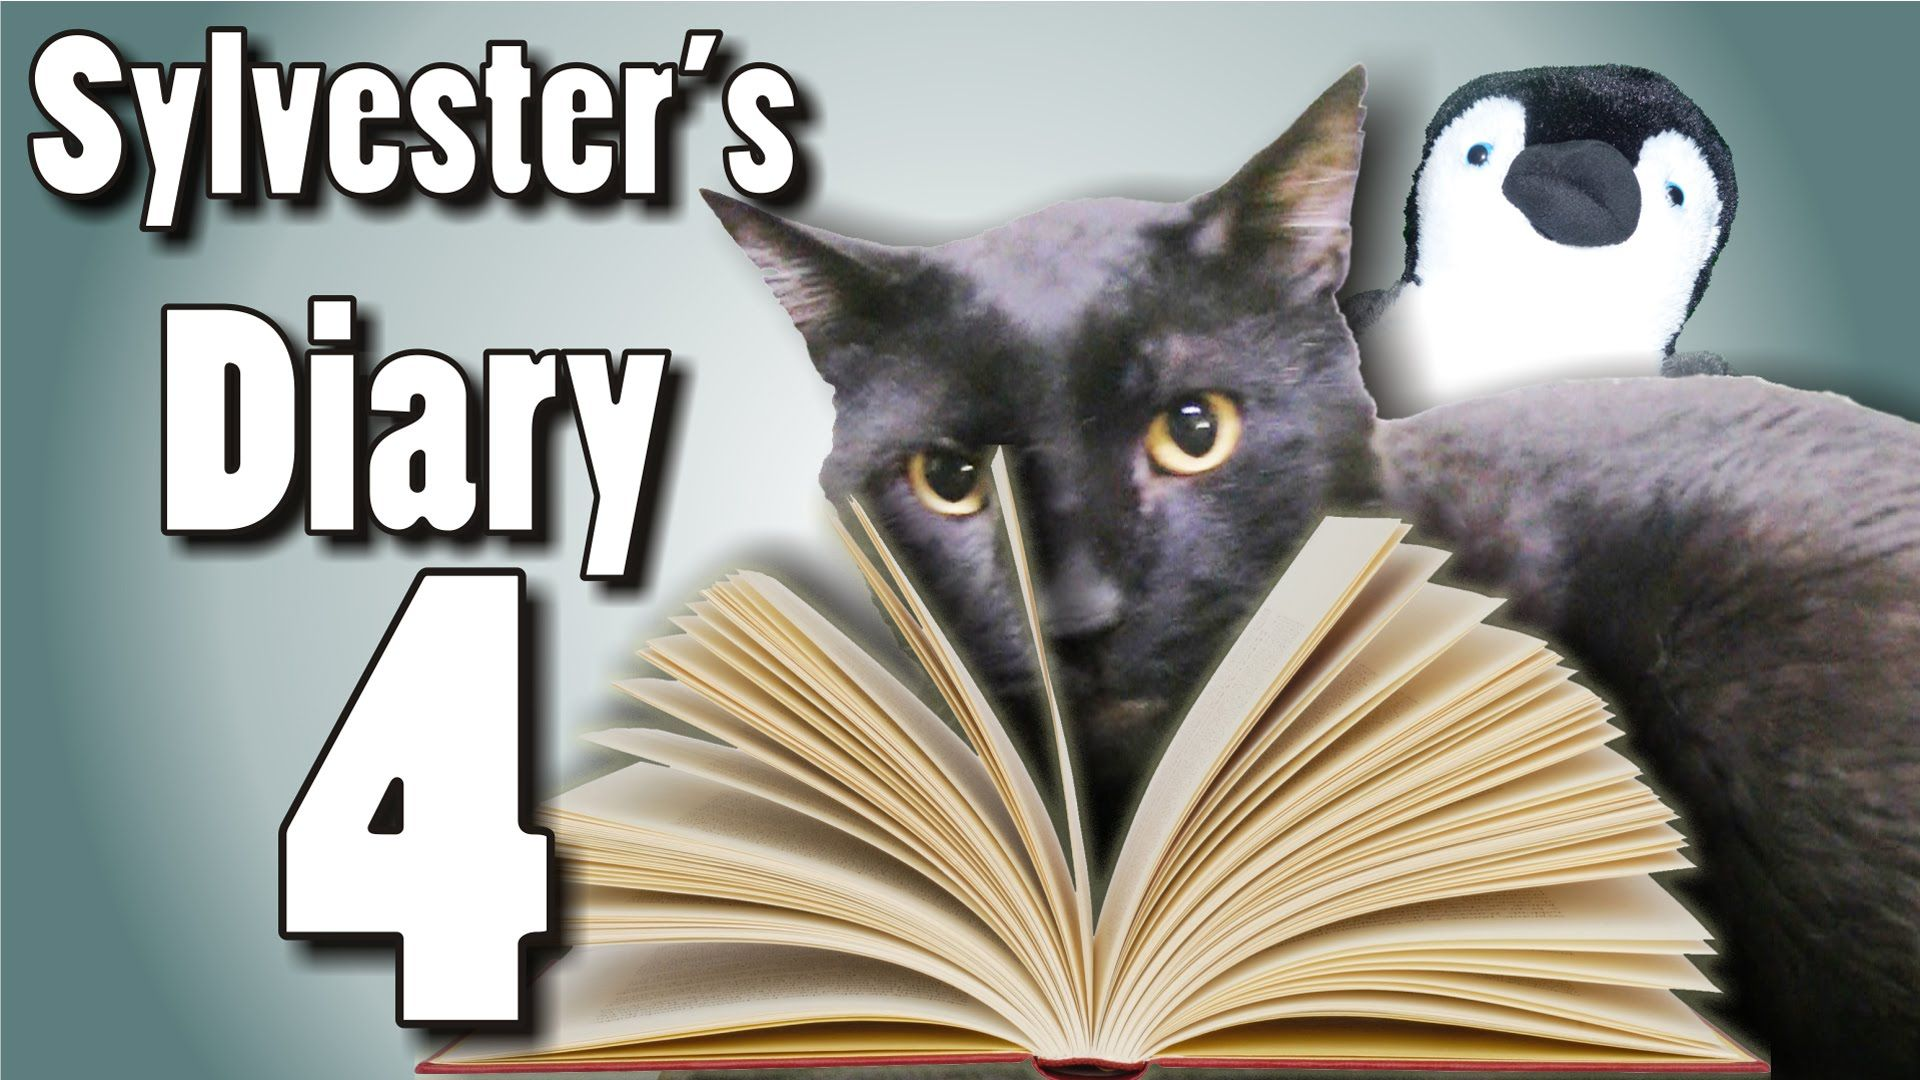 Sylvester's Diary 4 Burn! Cat diary, Sylvester, Cat movie